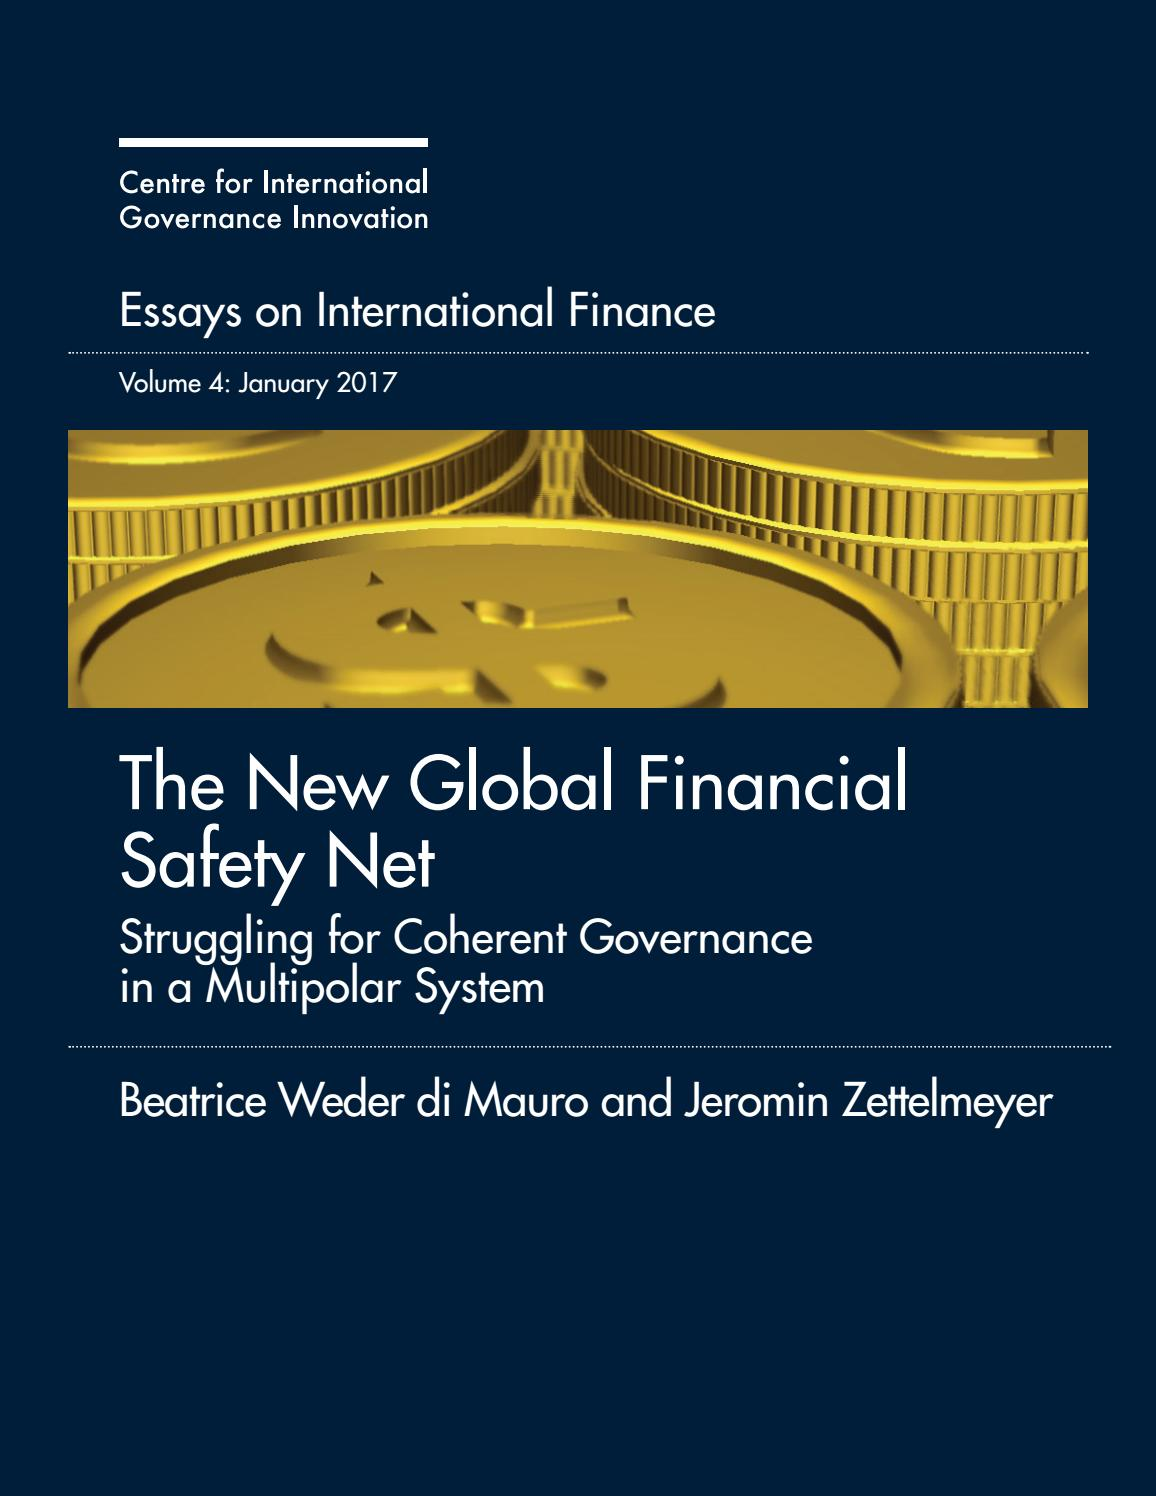 cigi essays on international finance volume the new global financial essay vol 4 2 months ago cigi